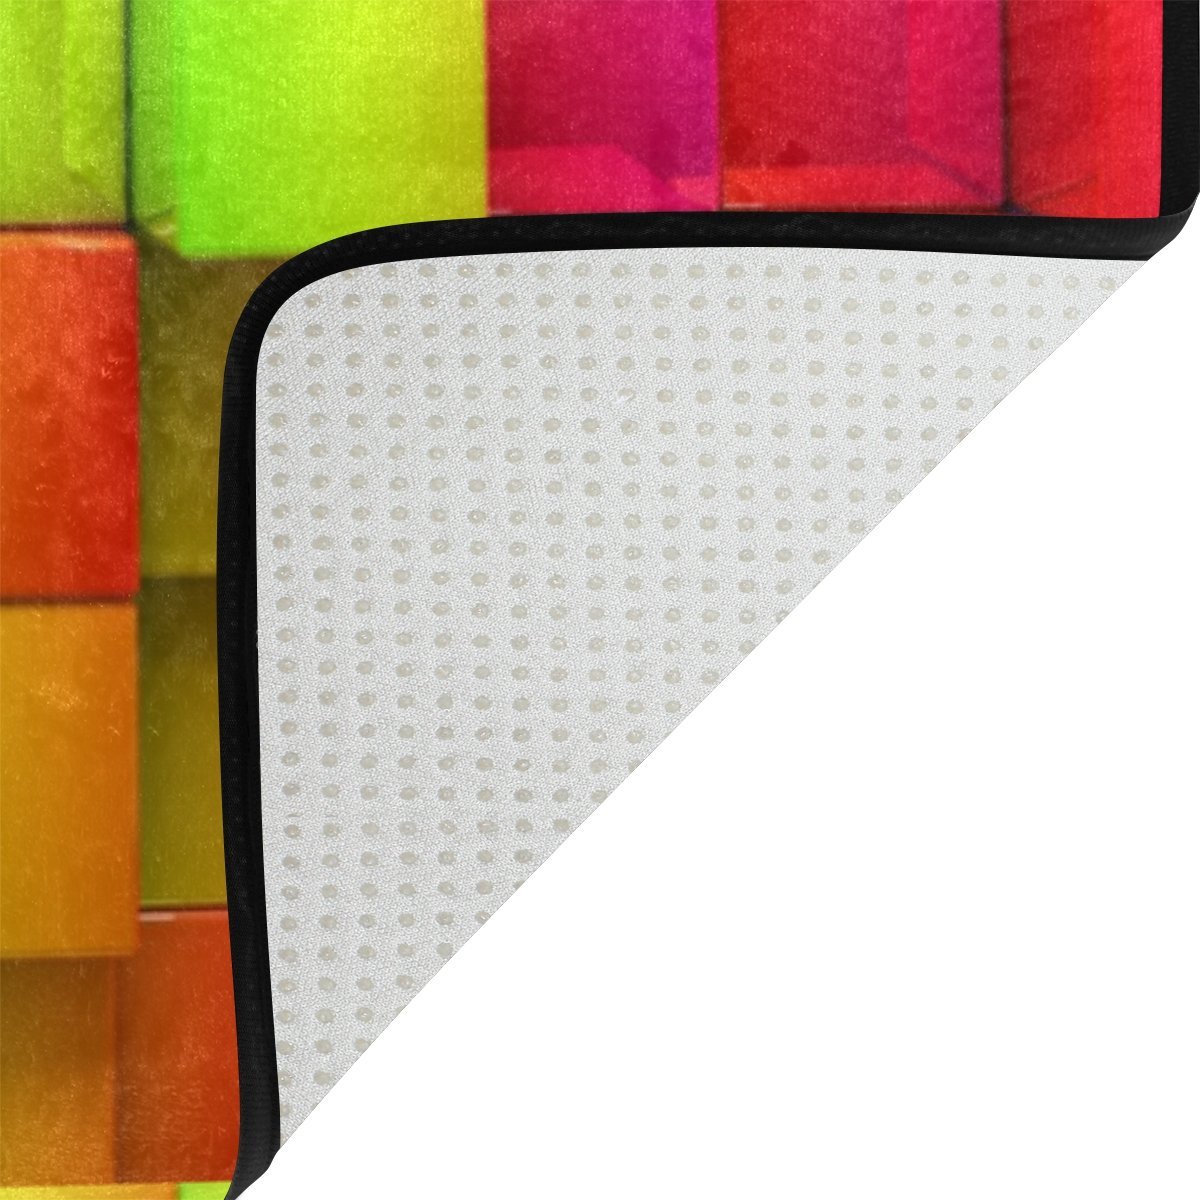 Kids Soft Area Rugs Non-Slip Floor Mat Resting Area Doormats YZGO Colorful Rainbow Boxes